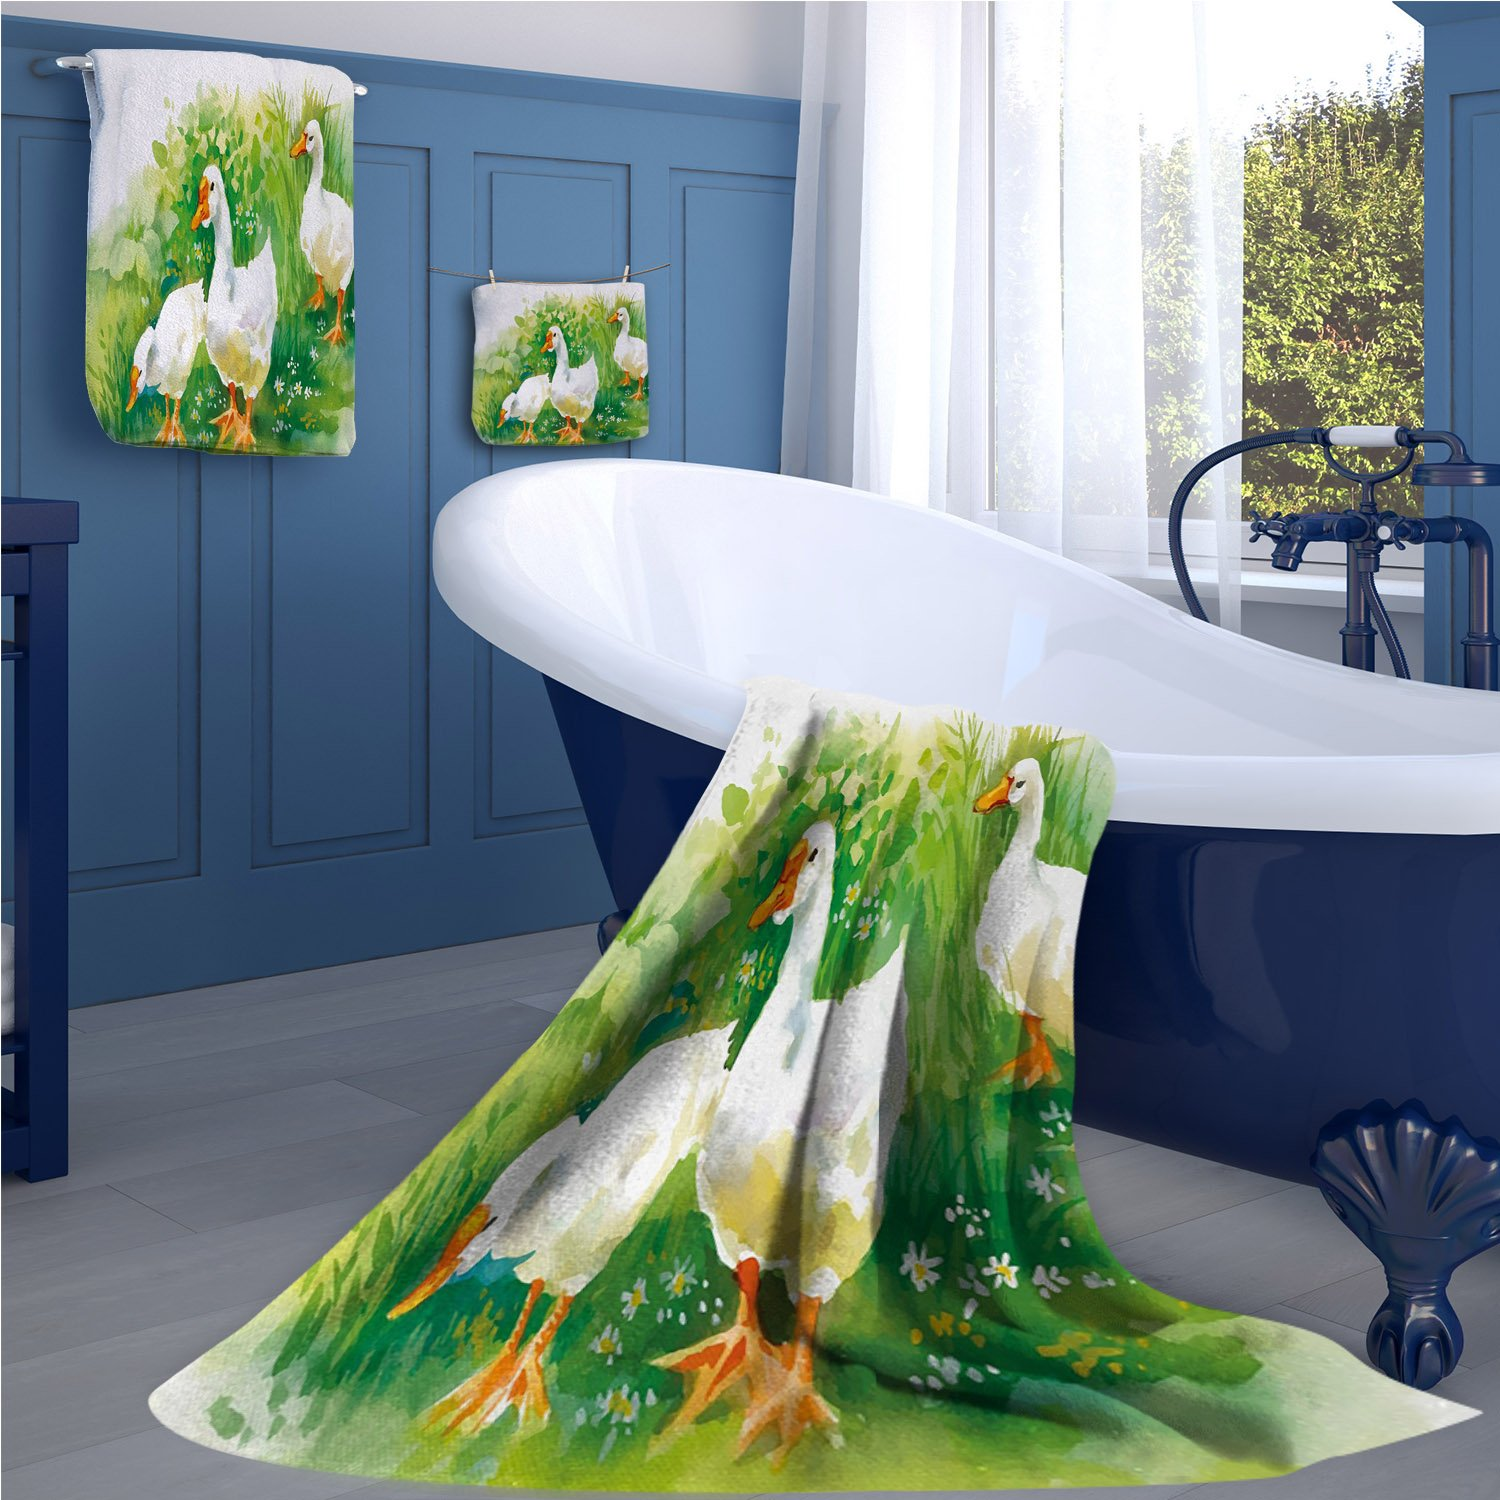 familytaste Rubber Duck Print bathroom accessories set Goose in Farm Lake Plants Grass Reeds Flowers Pond Animals Geese Feathers personalized hand towels set Green and White